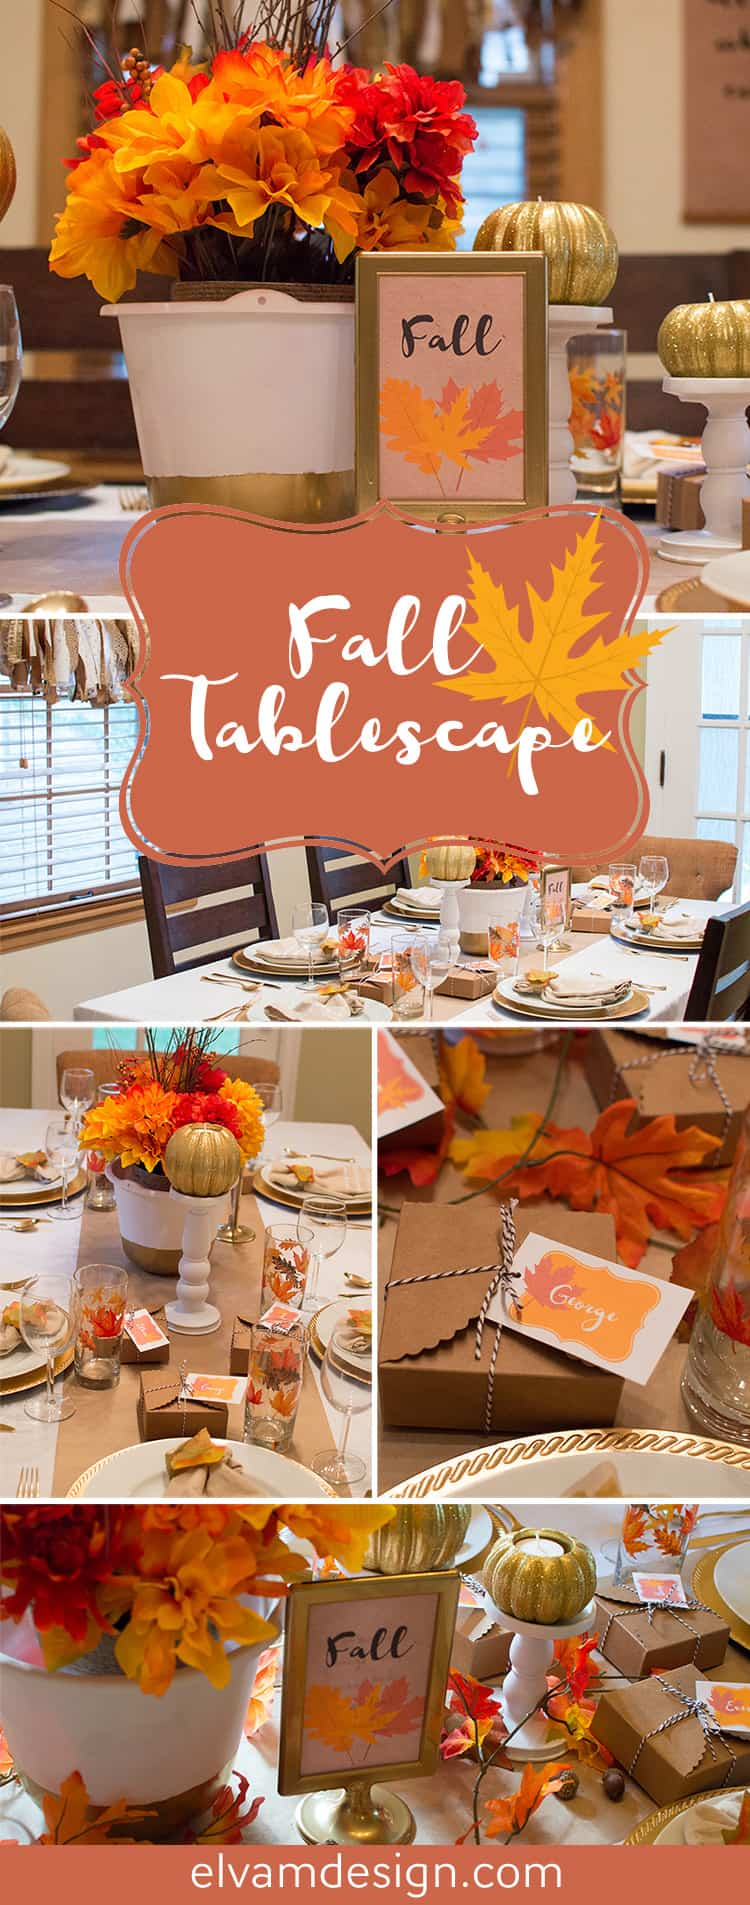 Recreate this Festive Fall Tablescape from Elva M Design Studio with products from Oriental Trading